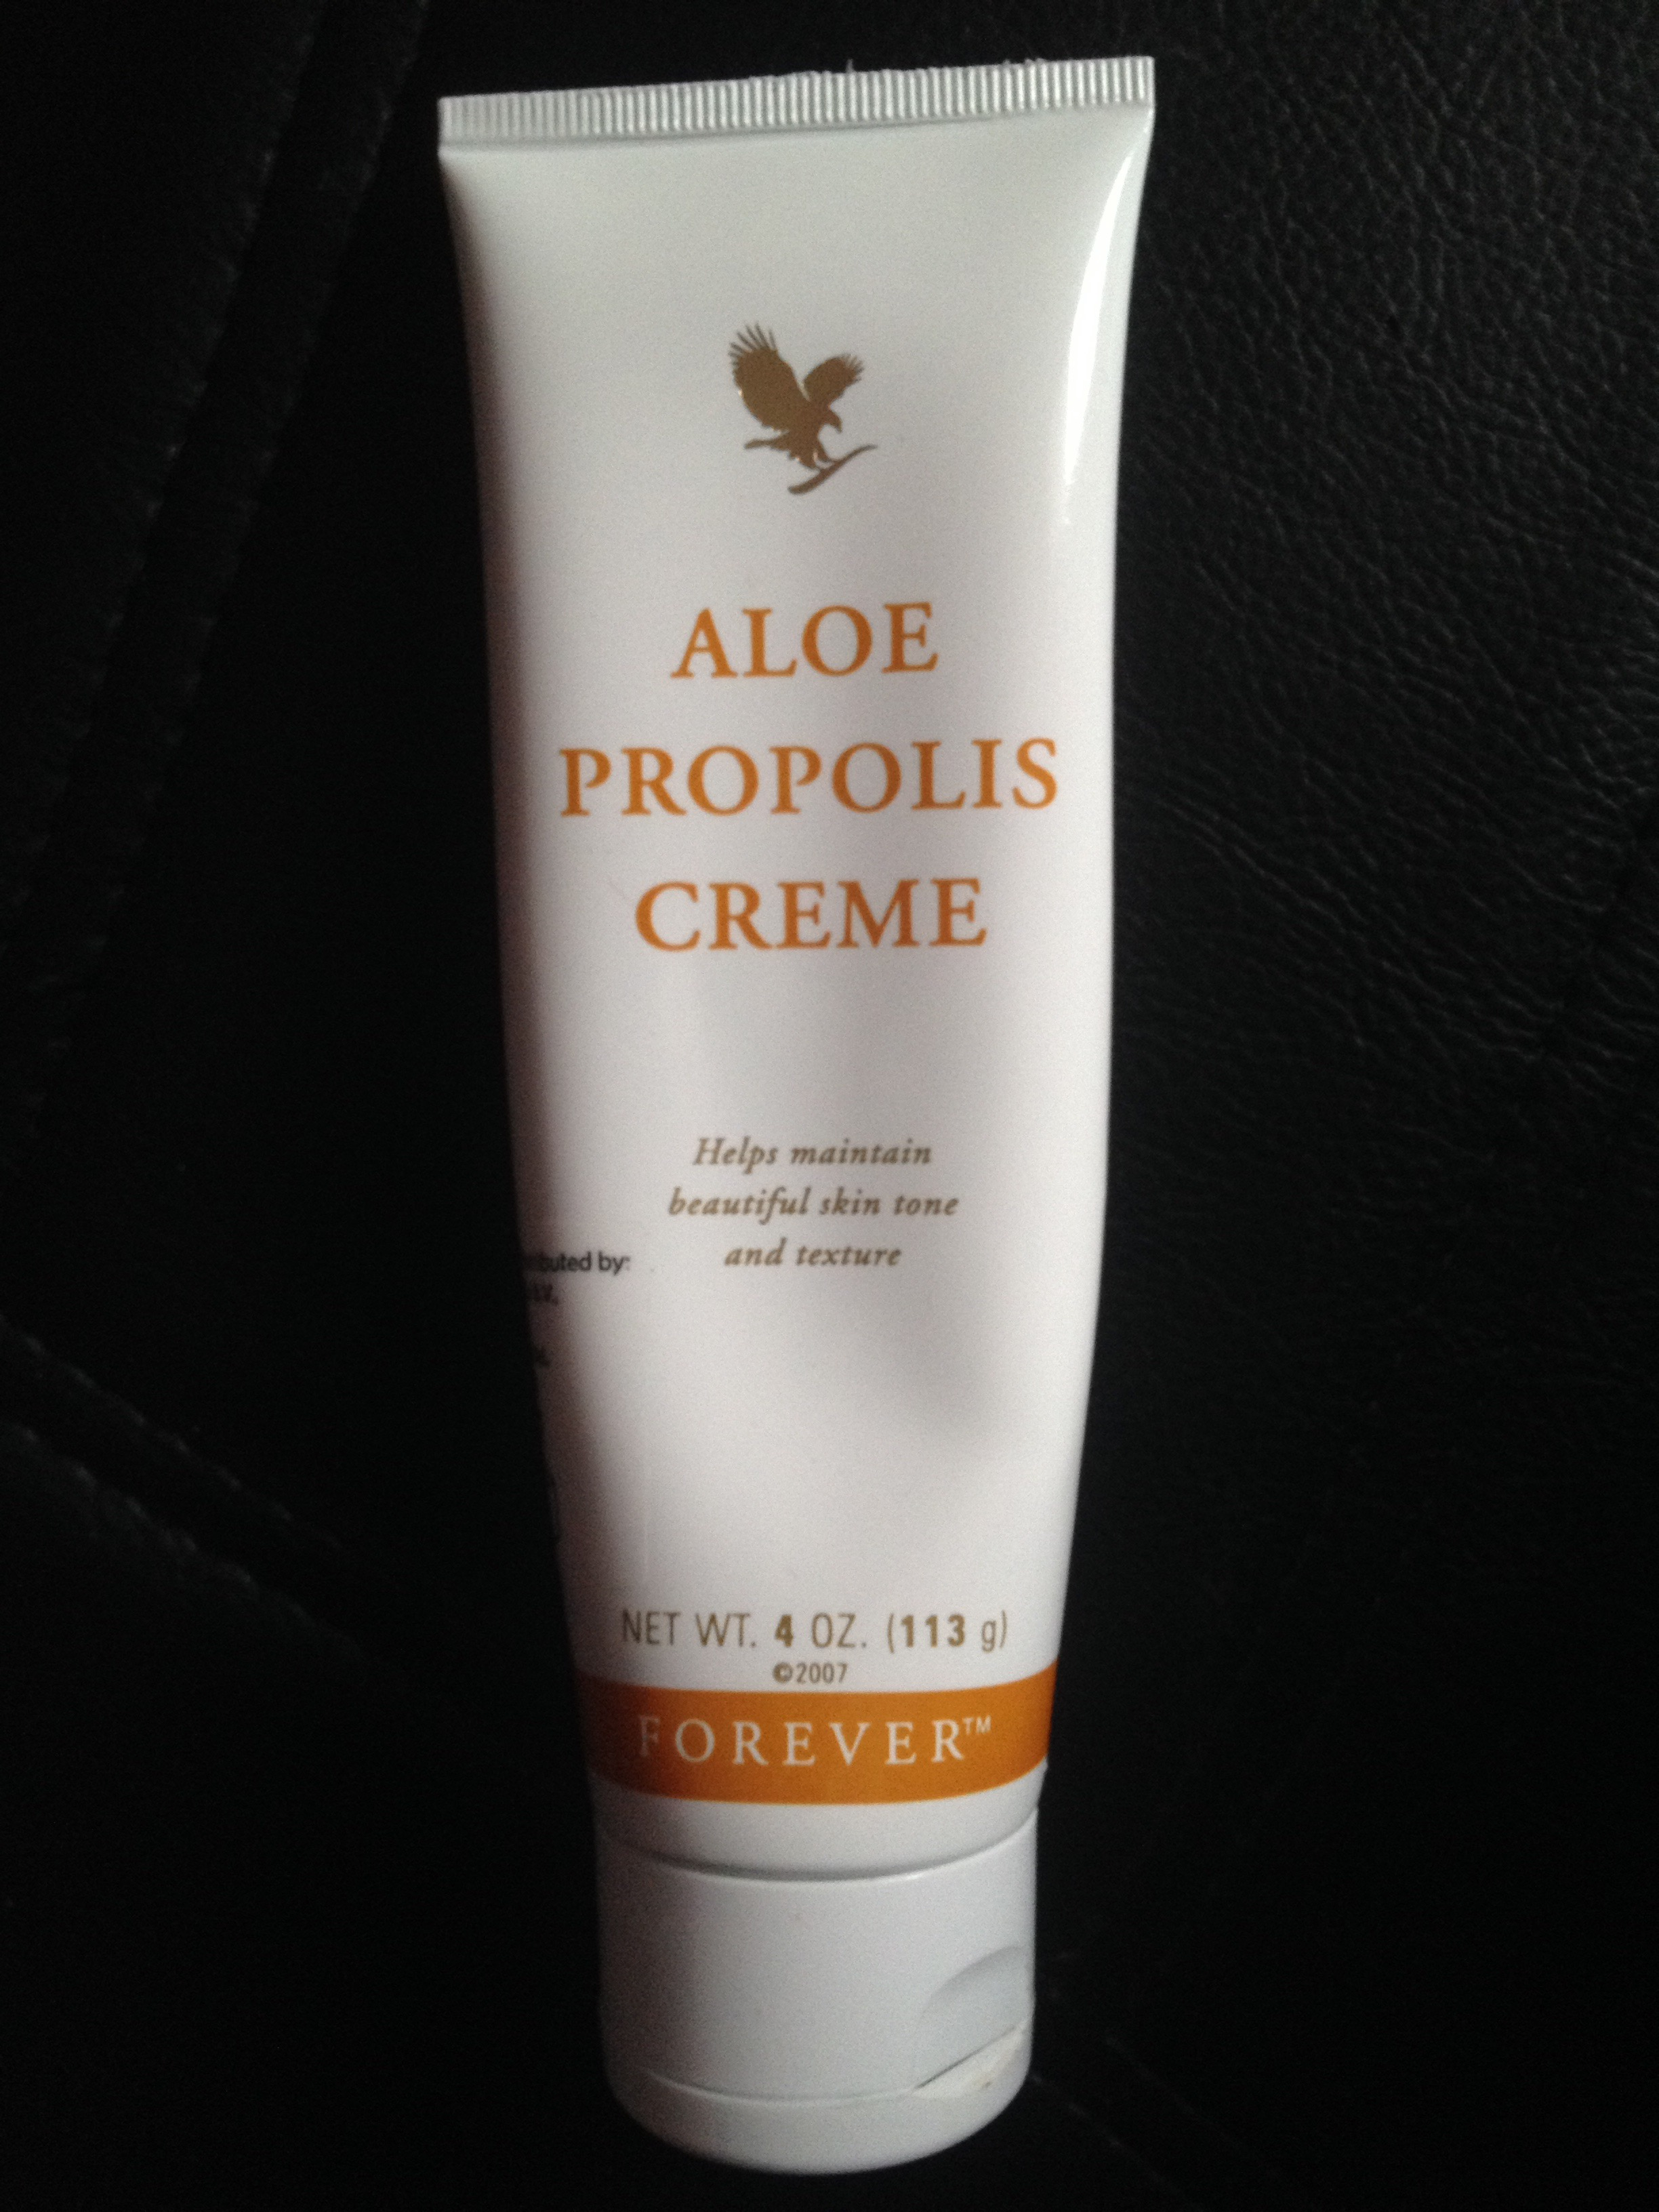 Aloe Propolis Creme Review – All + is + play